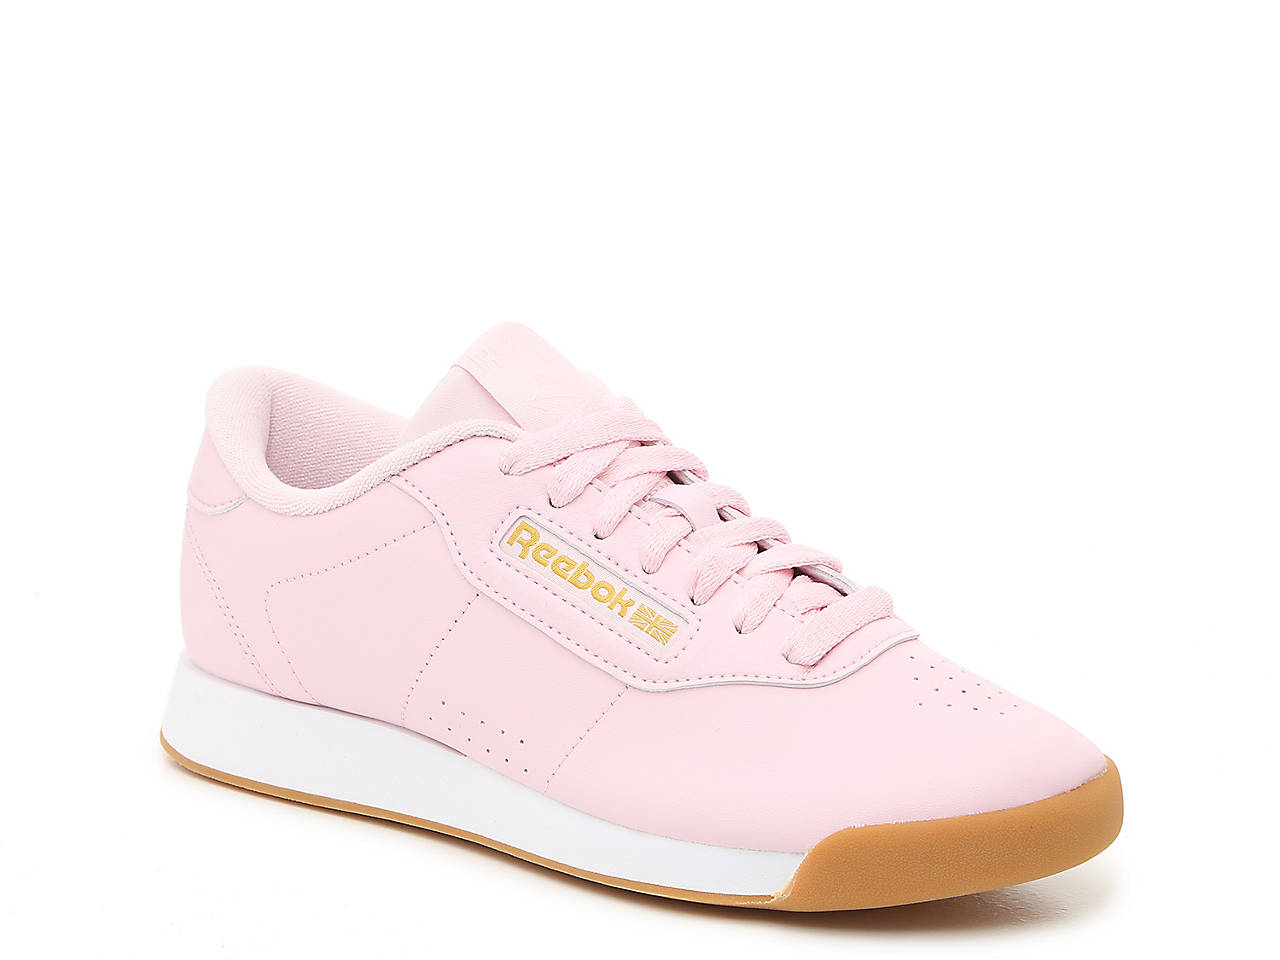 445cb23173f Reebok Princess Sneaker - Women s Women s Shoes